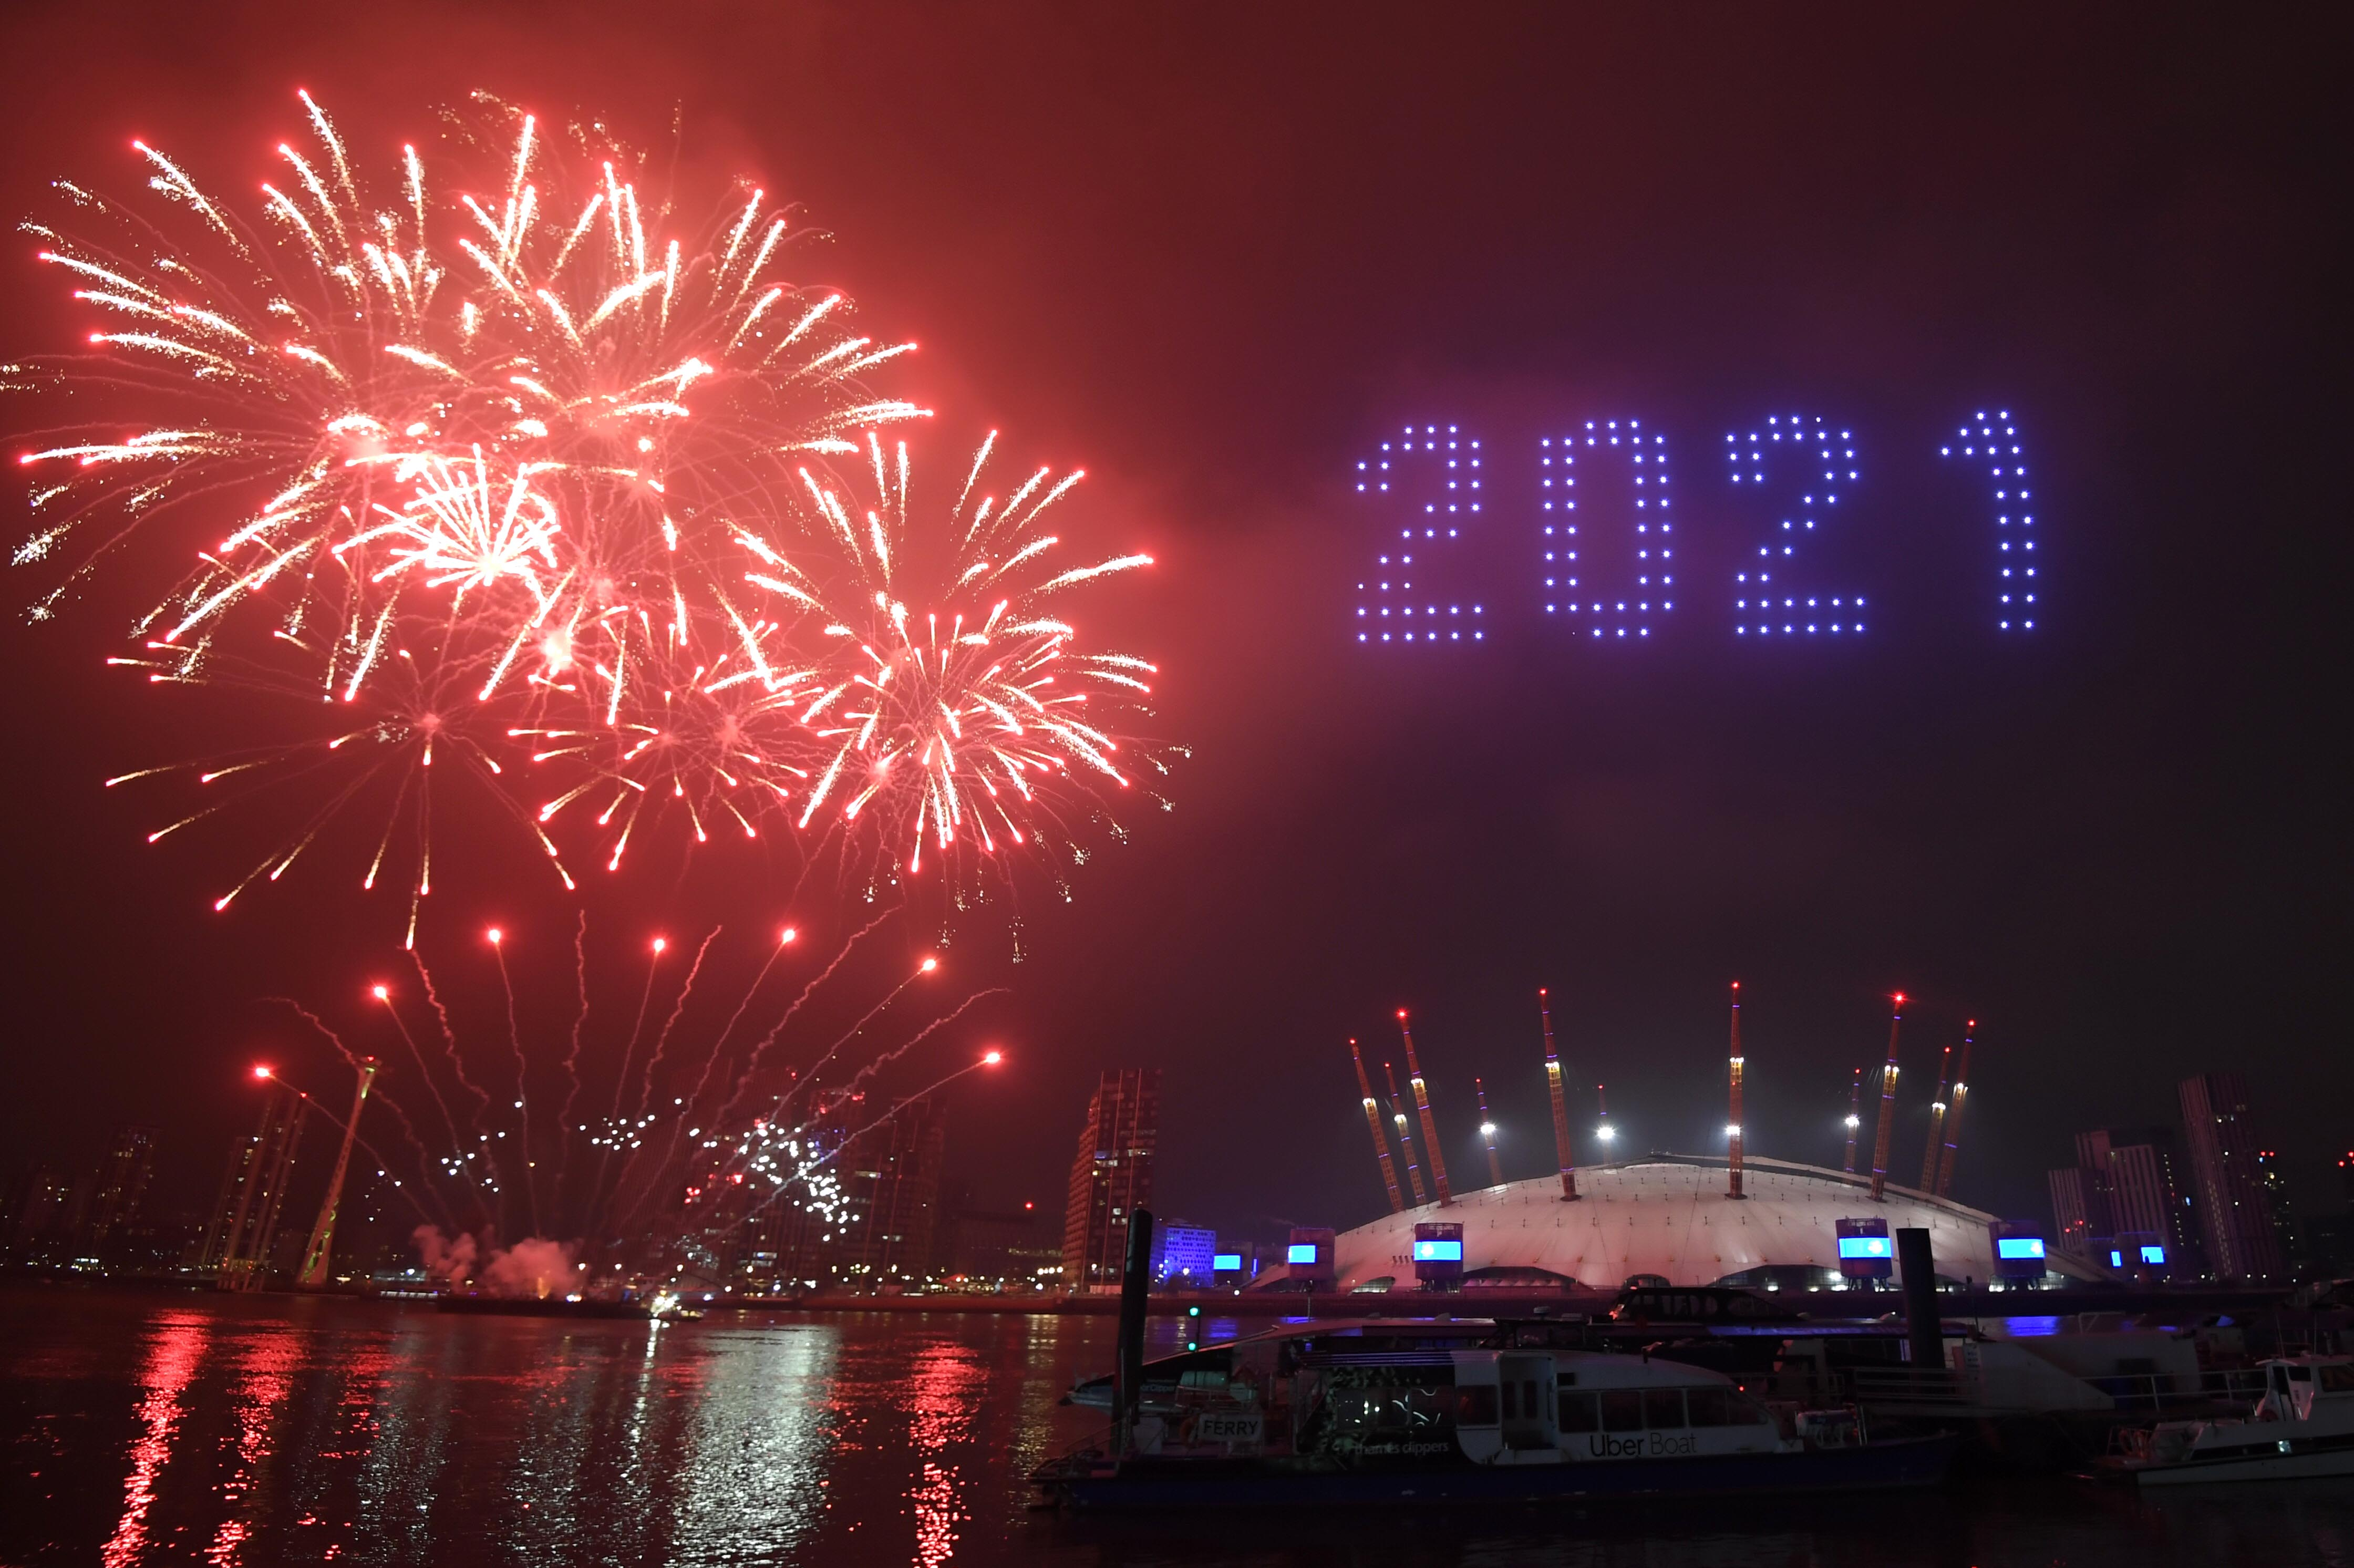 Fireworks and drones illuminate the night sky over the The O2 in London as they form a light display as London's normal New Year's Eve fireworks display was cancelled due to the coronavirus pandemic. (Photo by Victoria Jones/PA Images via Getty Images)